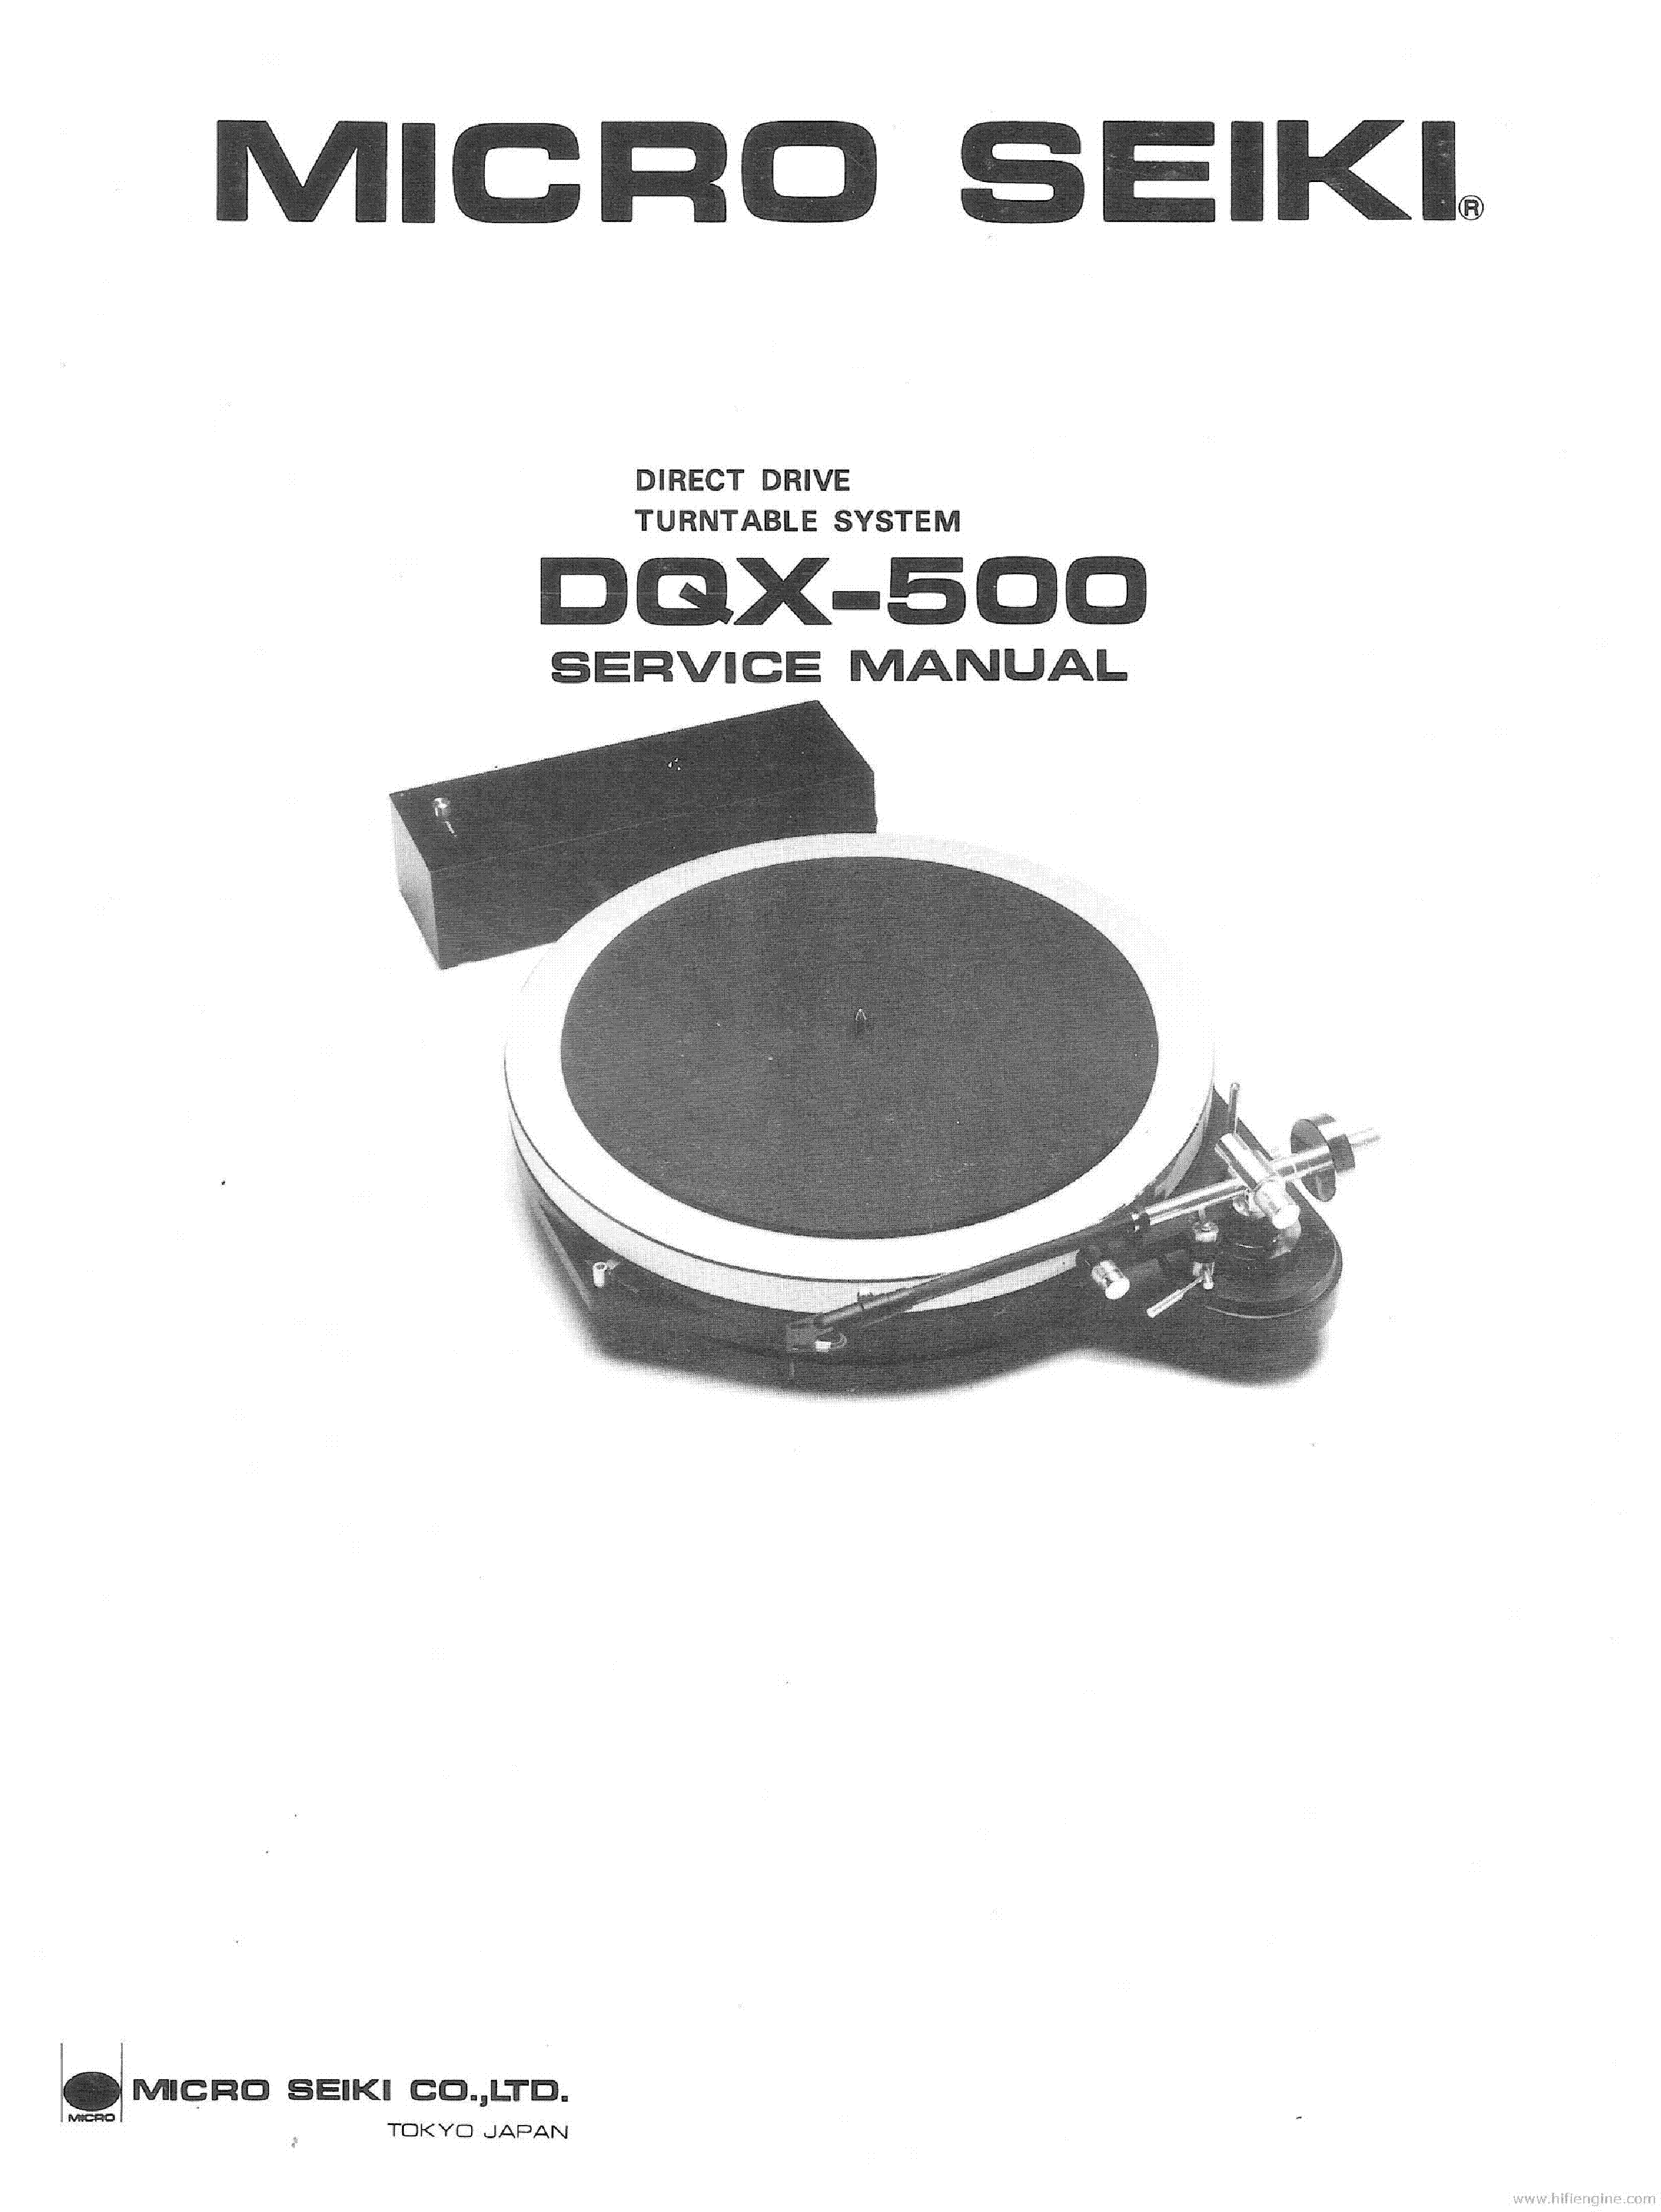 MICRO-SEIKI DQX-500 TURNTABLE service manual (1st page)